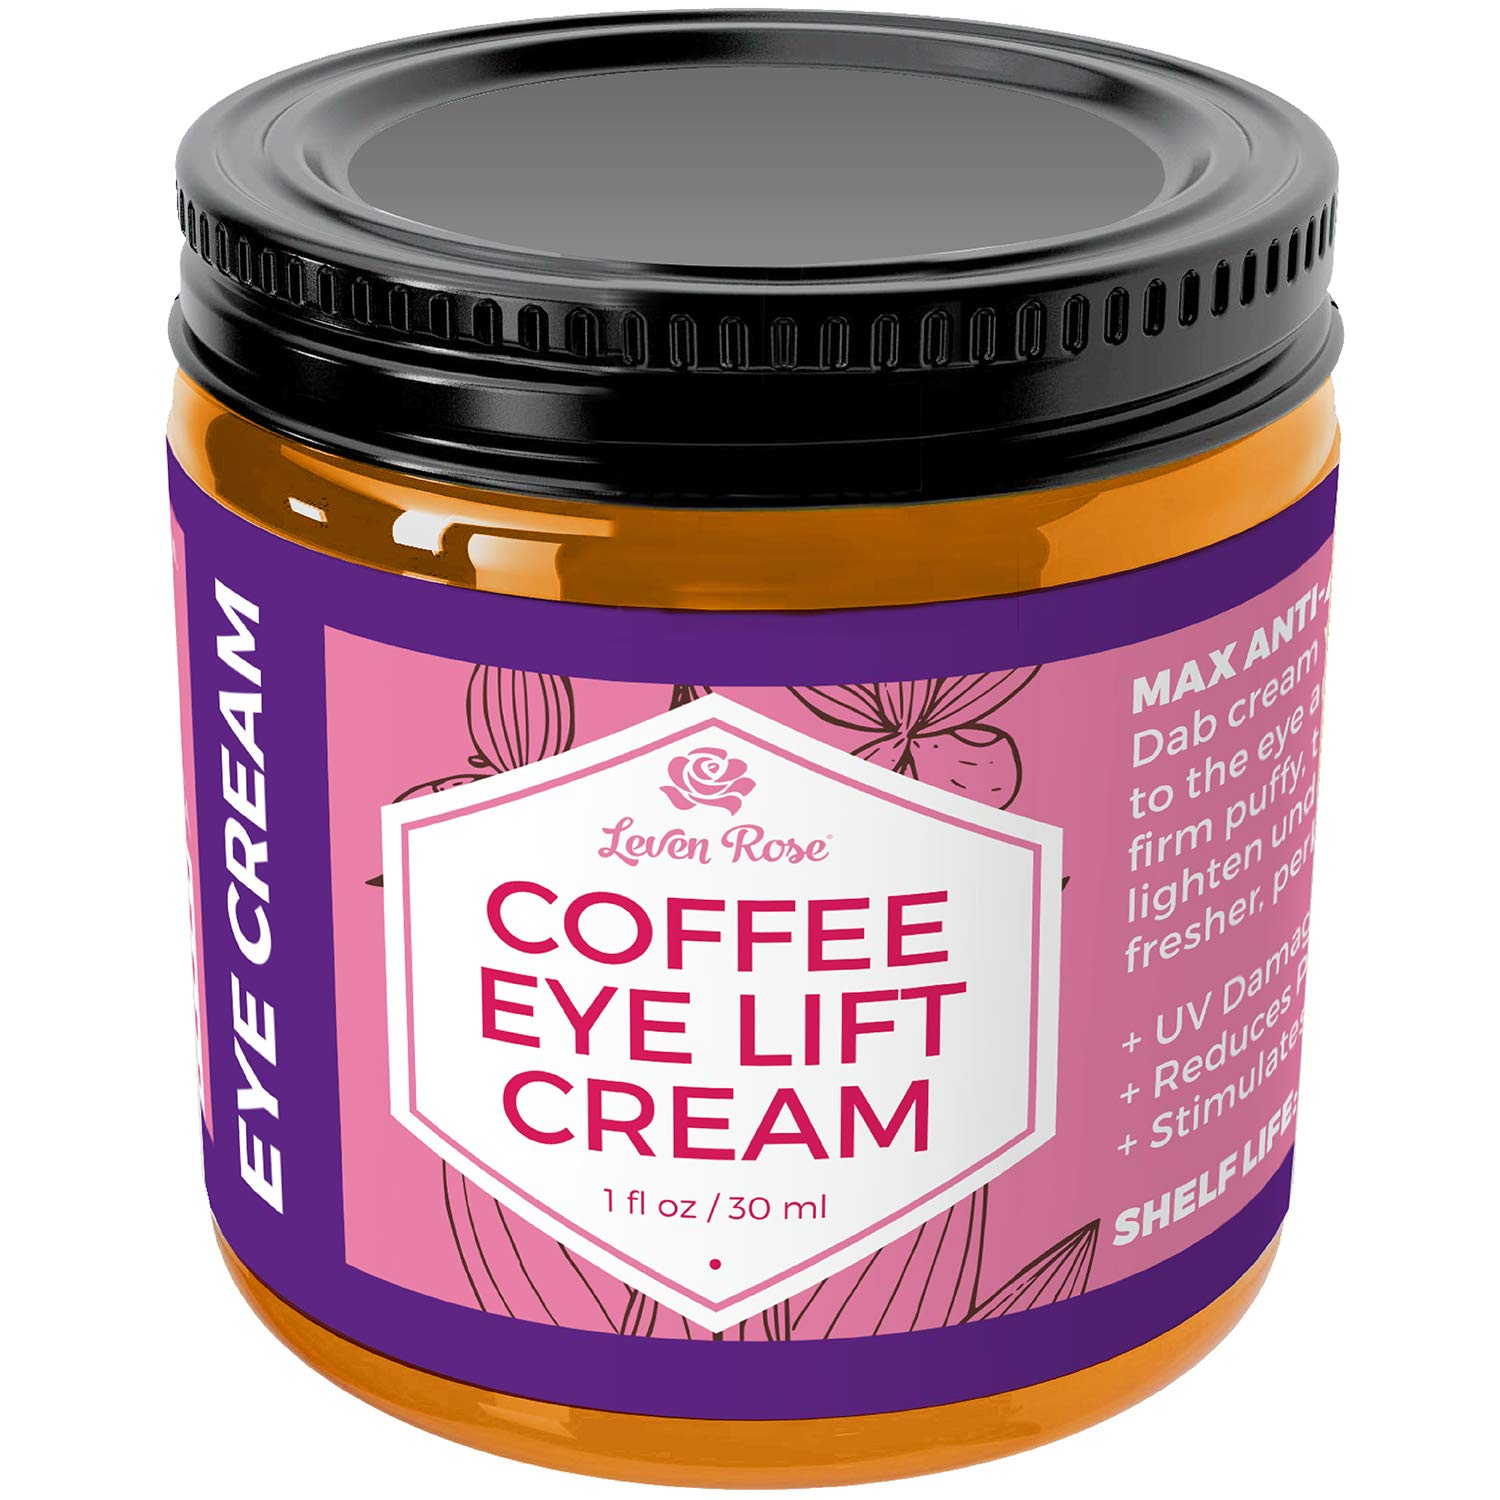 Coffee Eye Lift Cream by Leven Rose 100% Natural, Reduces Puffiness, Brightens Tired Eyes & Dark Circles, Anti Aging, Firming, Collagen Building, Deep Hydrating Wrinkle Creme 1 oz by Leven Rose